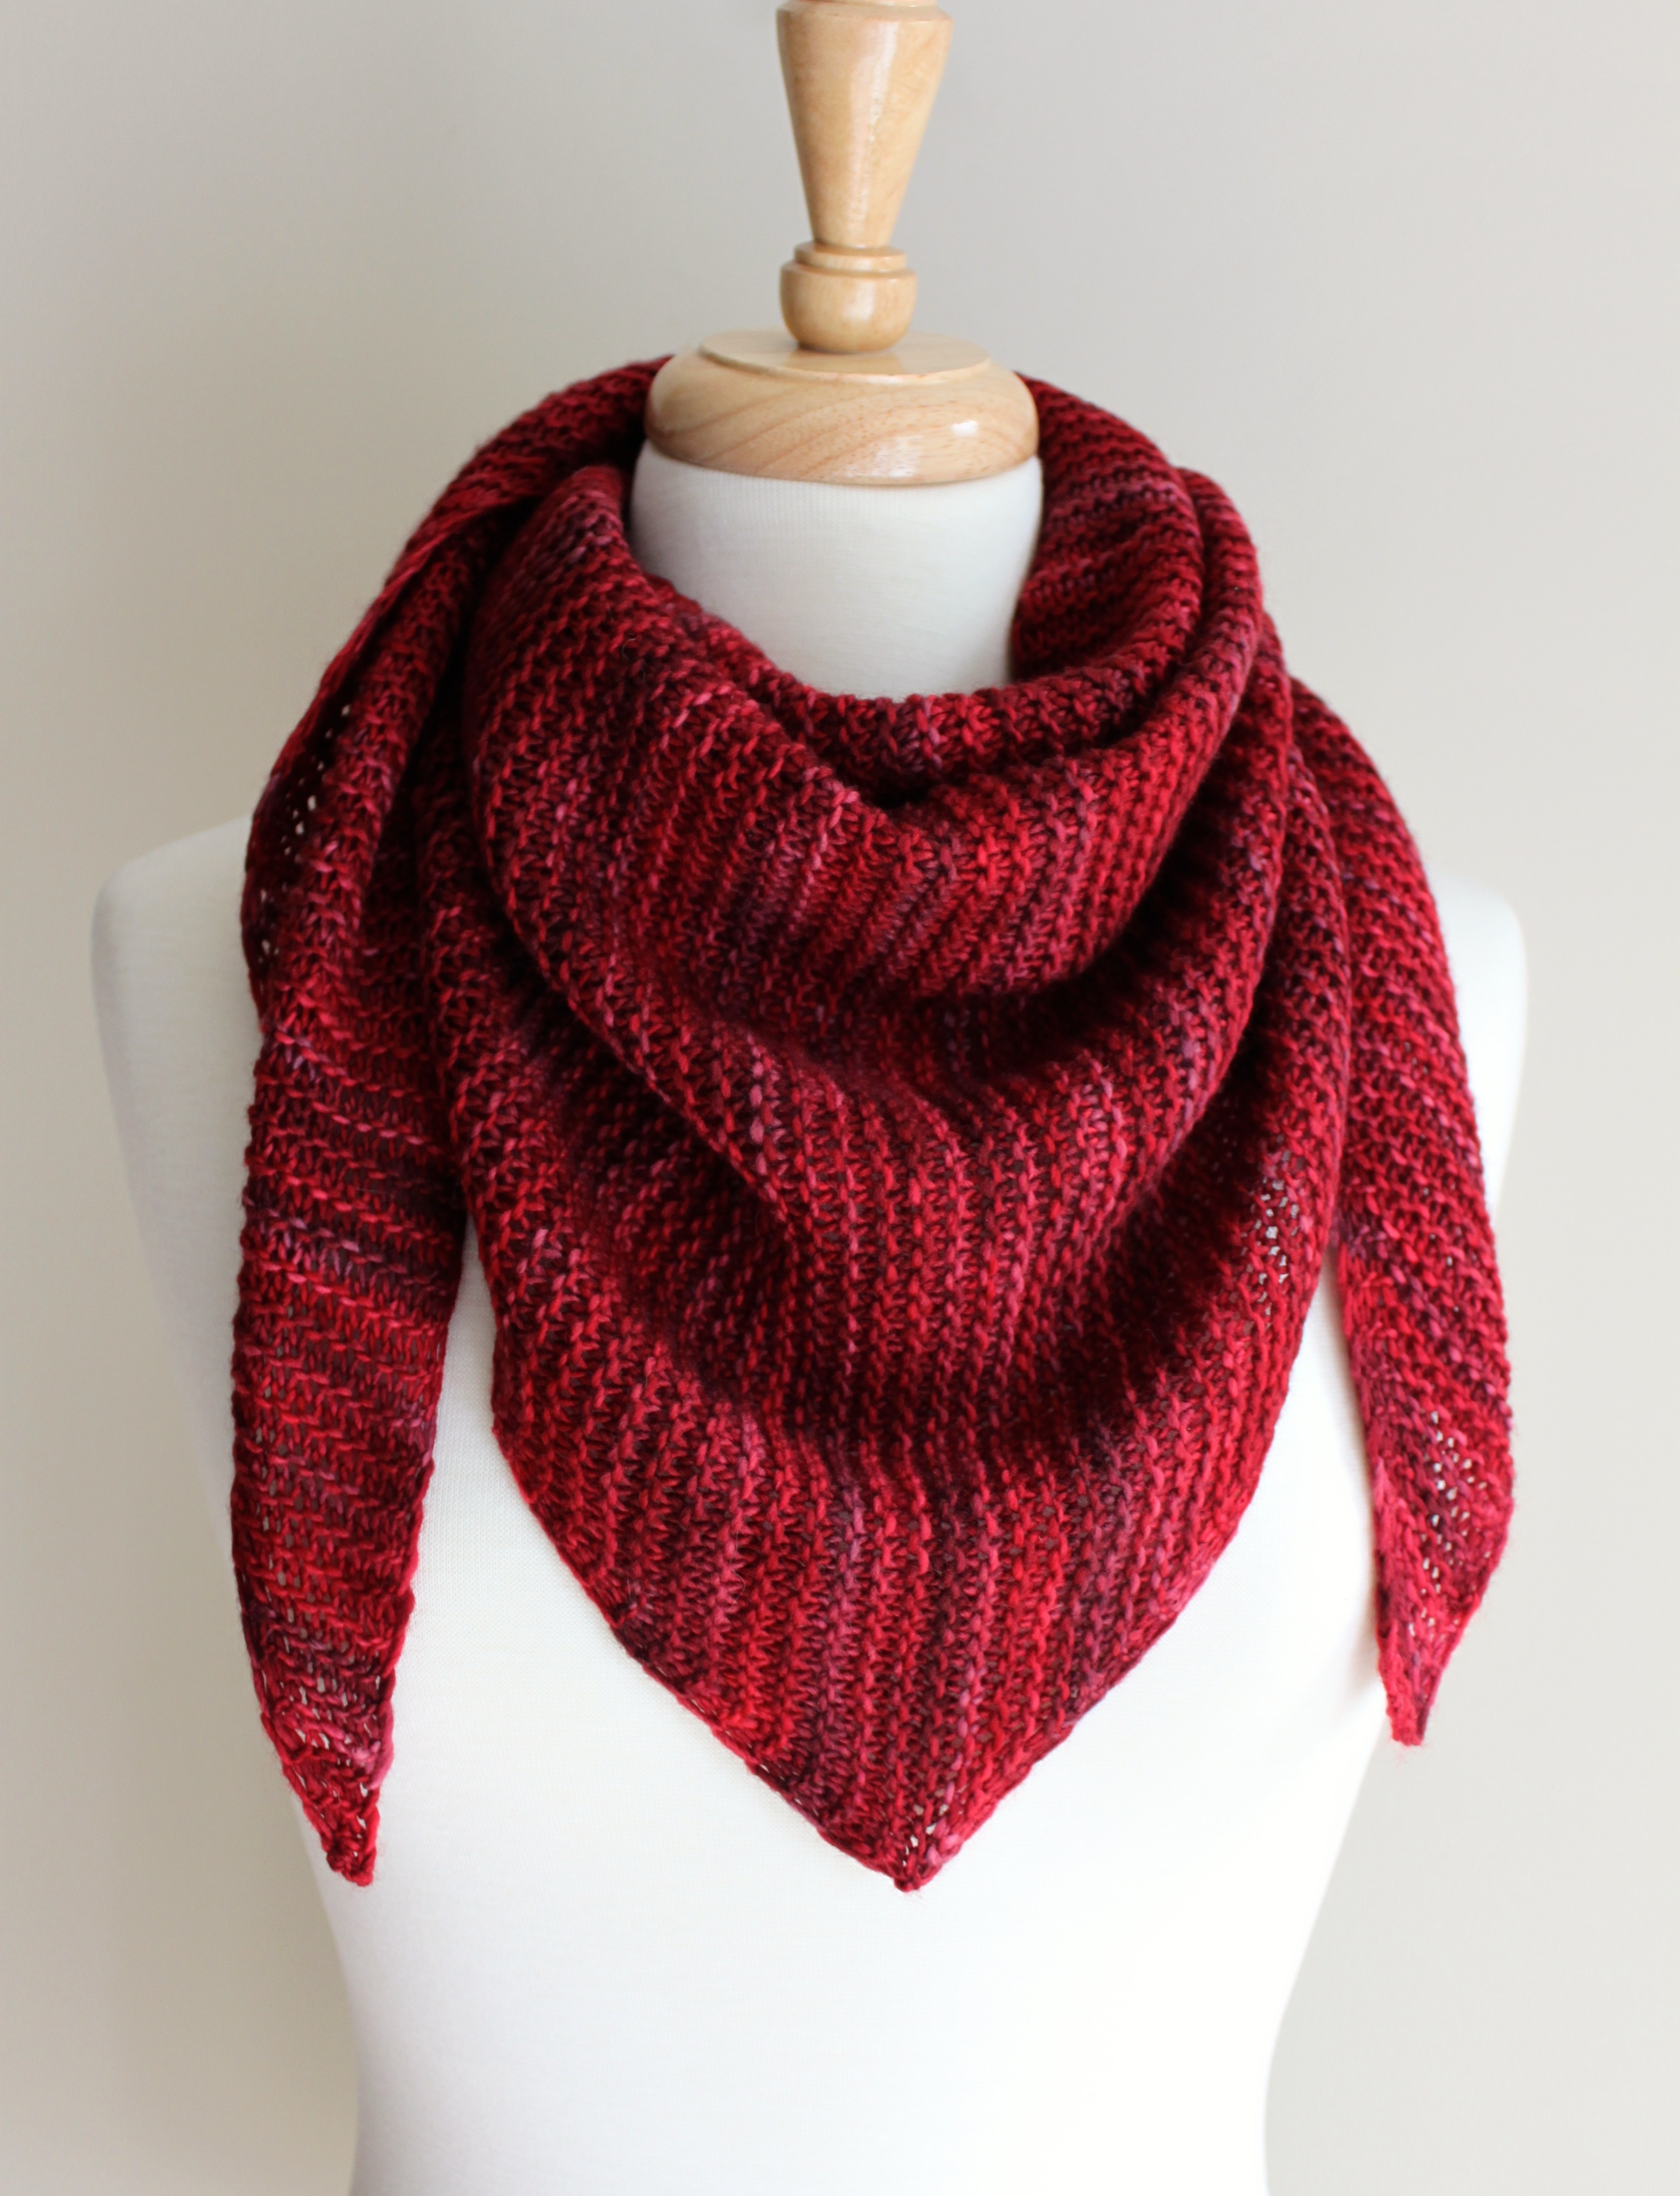 Knitting Scarf Pattern For Beginners Free Free Knitting Patterns Truly Triangular Scarf Leah Michelle Designs